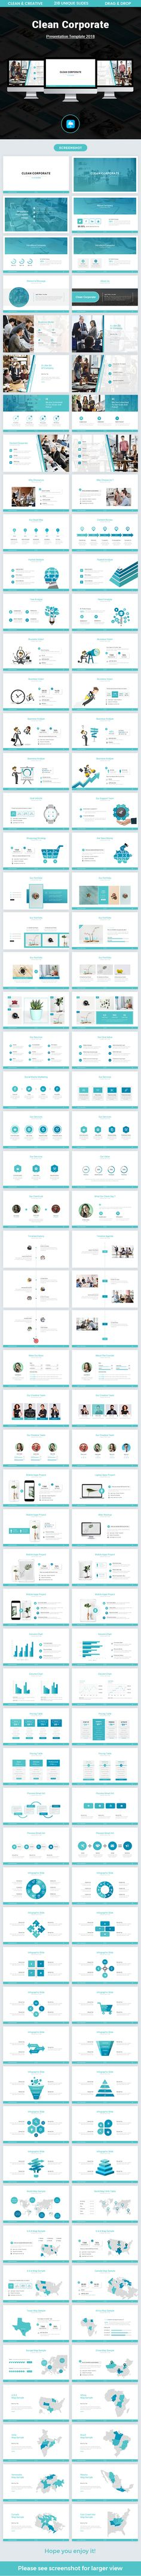 Clean Corporate Keynote Template 2018 - Business Keynote Templates  Download link: https://graphicriver.net/item/clean-corporate-keynote-template-2018/21965822?ref=KlitVogli